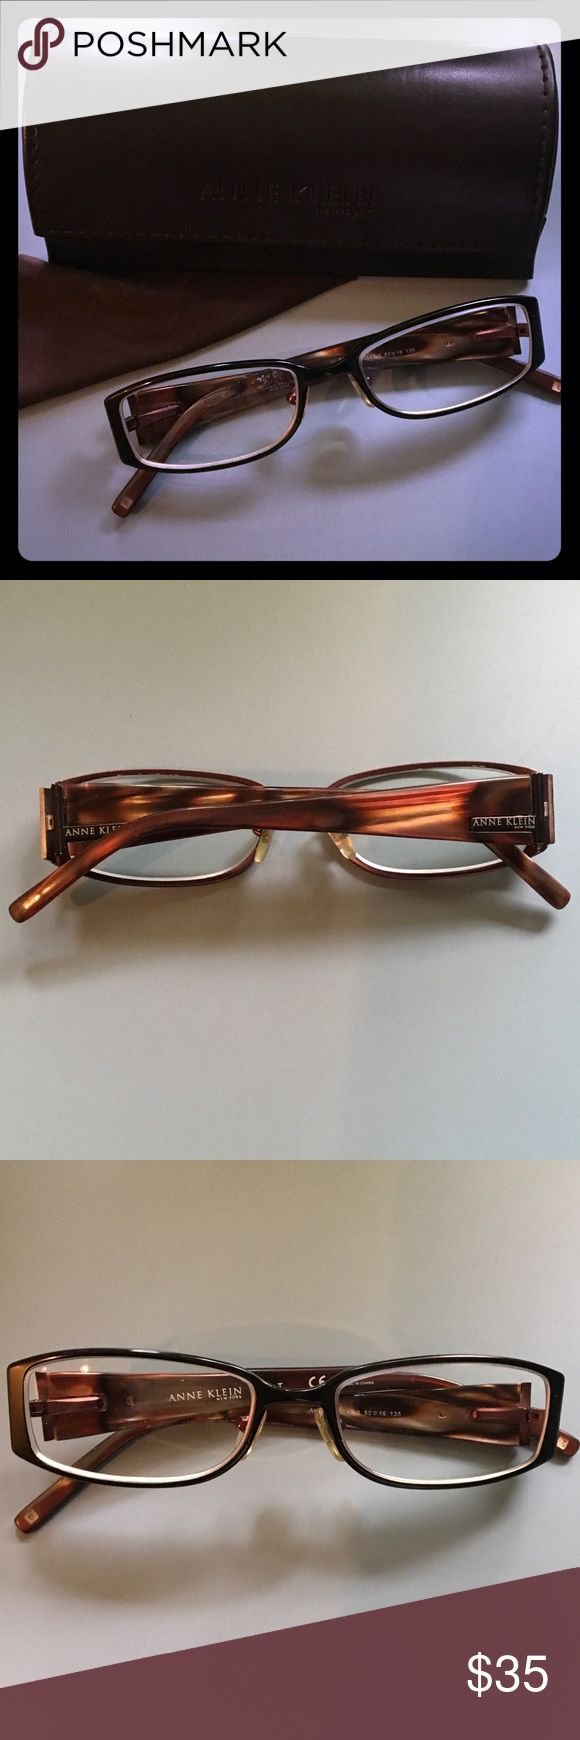 Anne Klein New York prescription eyeglasses Anne Klein New York prescription eyeglasses. Great used condition. The glasses have my prescription in the lenses so they would obviously need to be replaced. Will package with care. Anne Klein Accessories Glasses